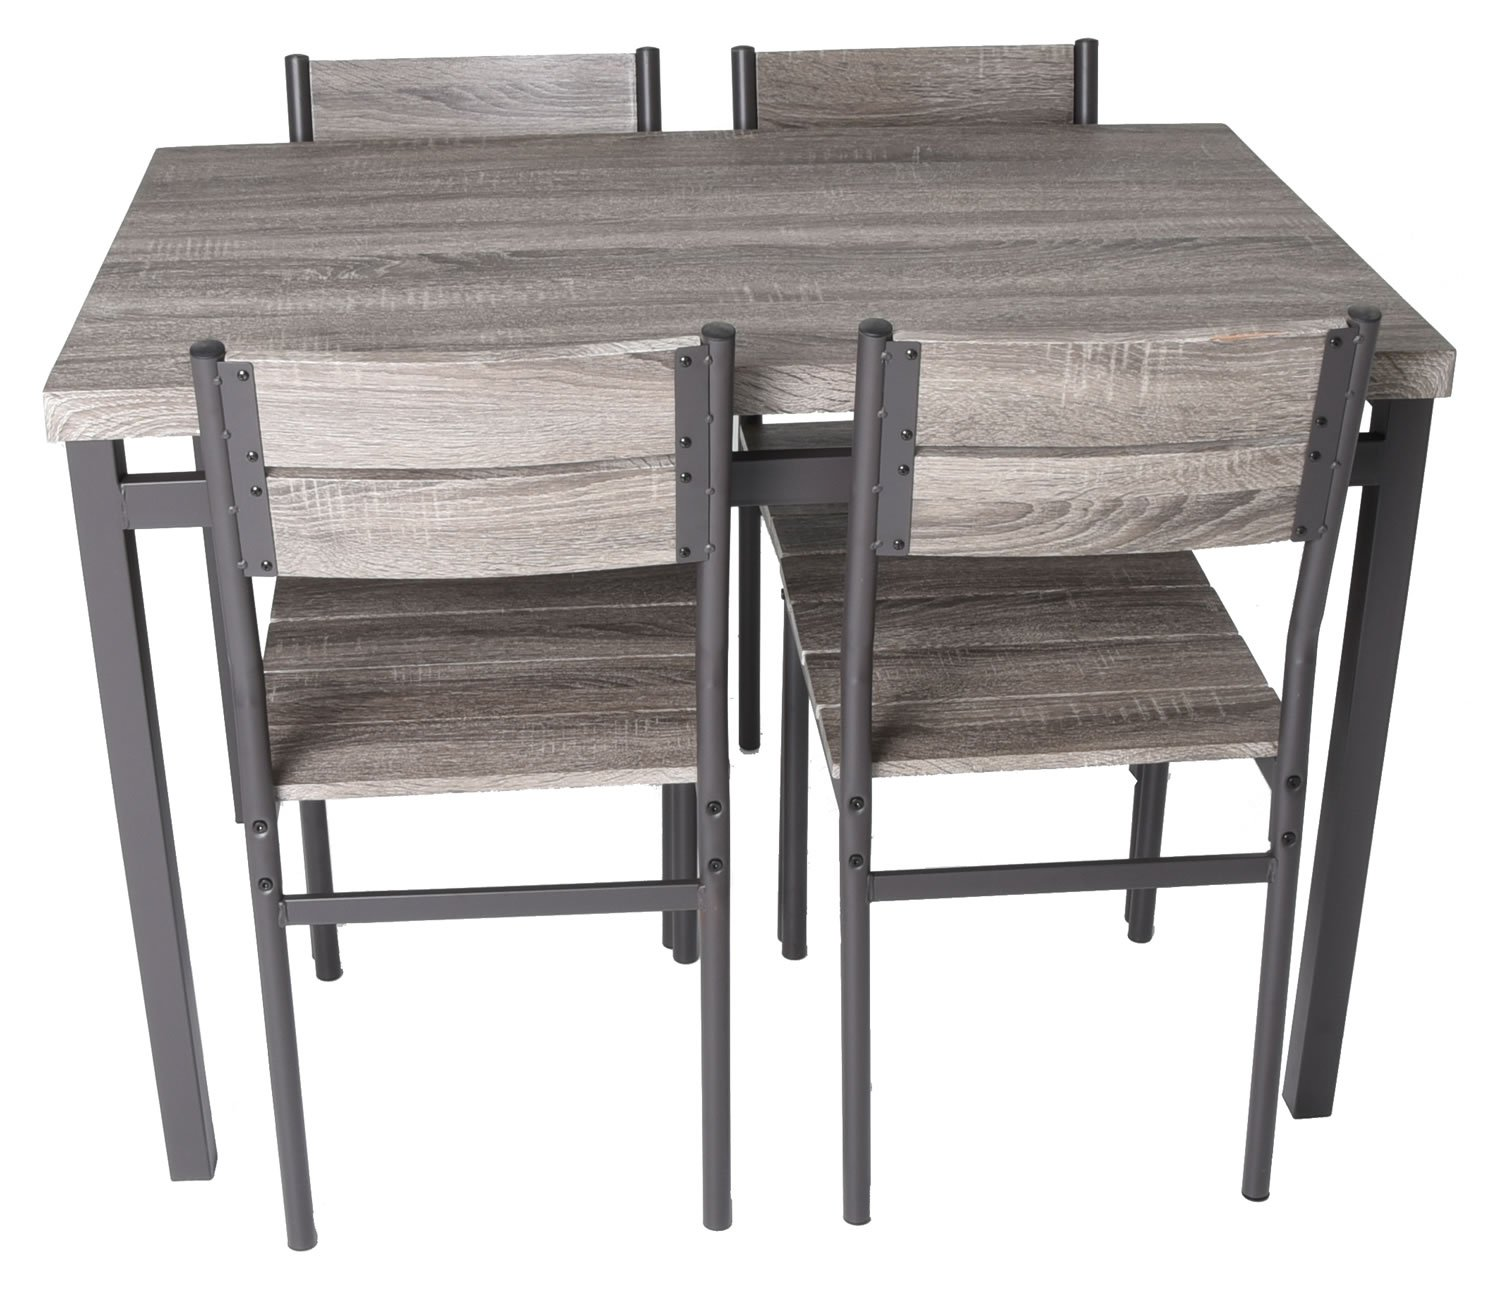 Zenvida 5 Piece Dining Set Rustic Grey Wooden Kitchen Table and 4 Chairs by Zenvida (Image #2)